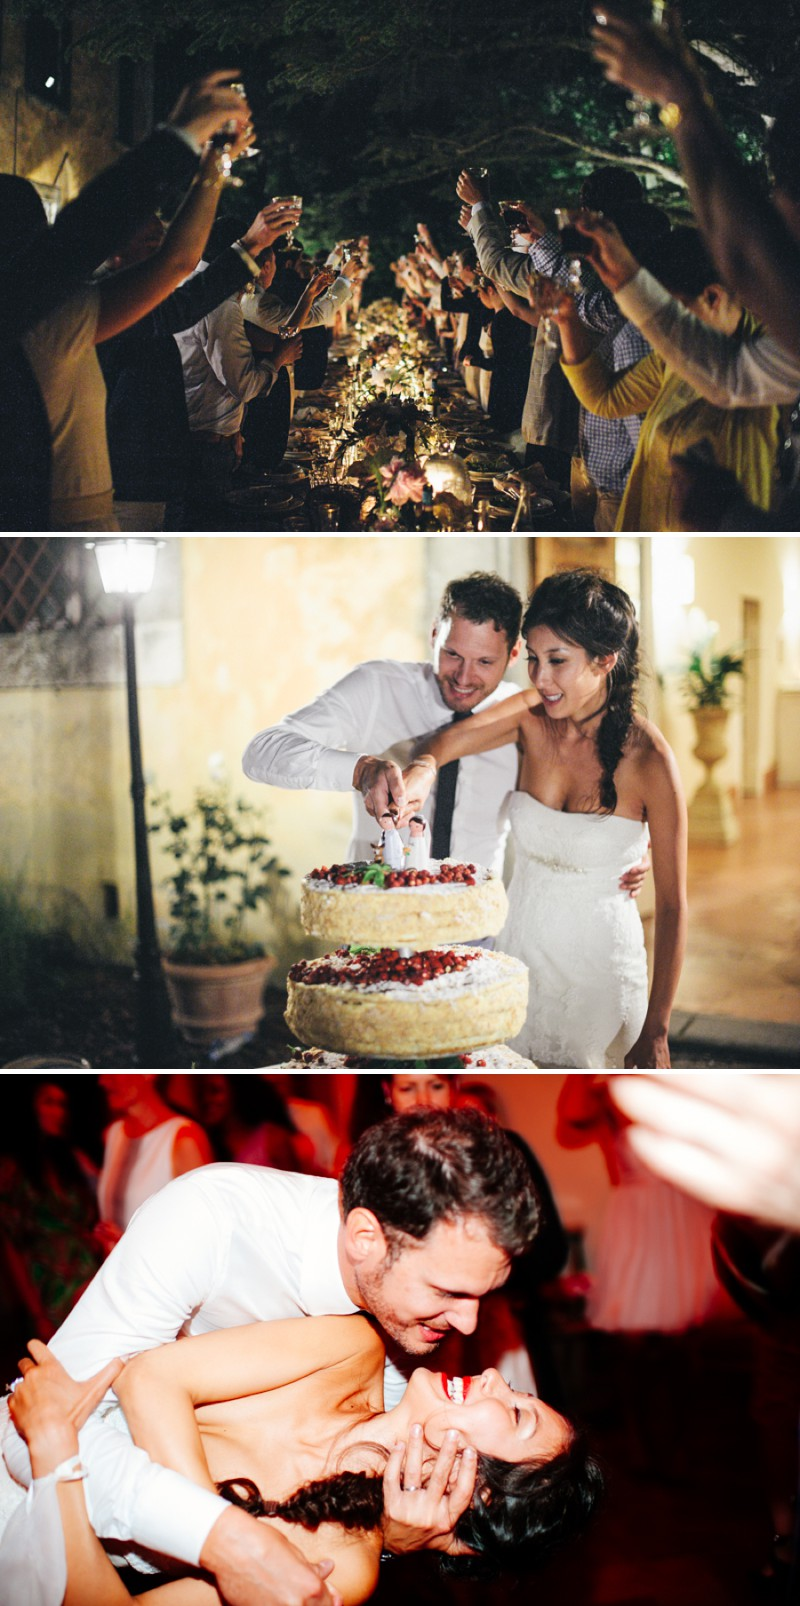 A Beautiful Italian Destination Wedding At Villa Di Ulignano With A Pronovias Dress And A Flower